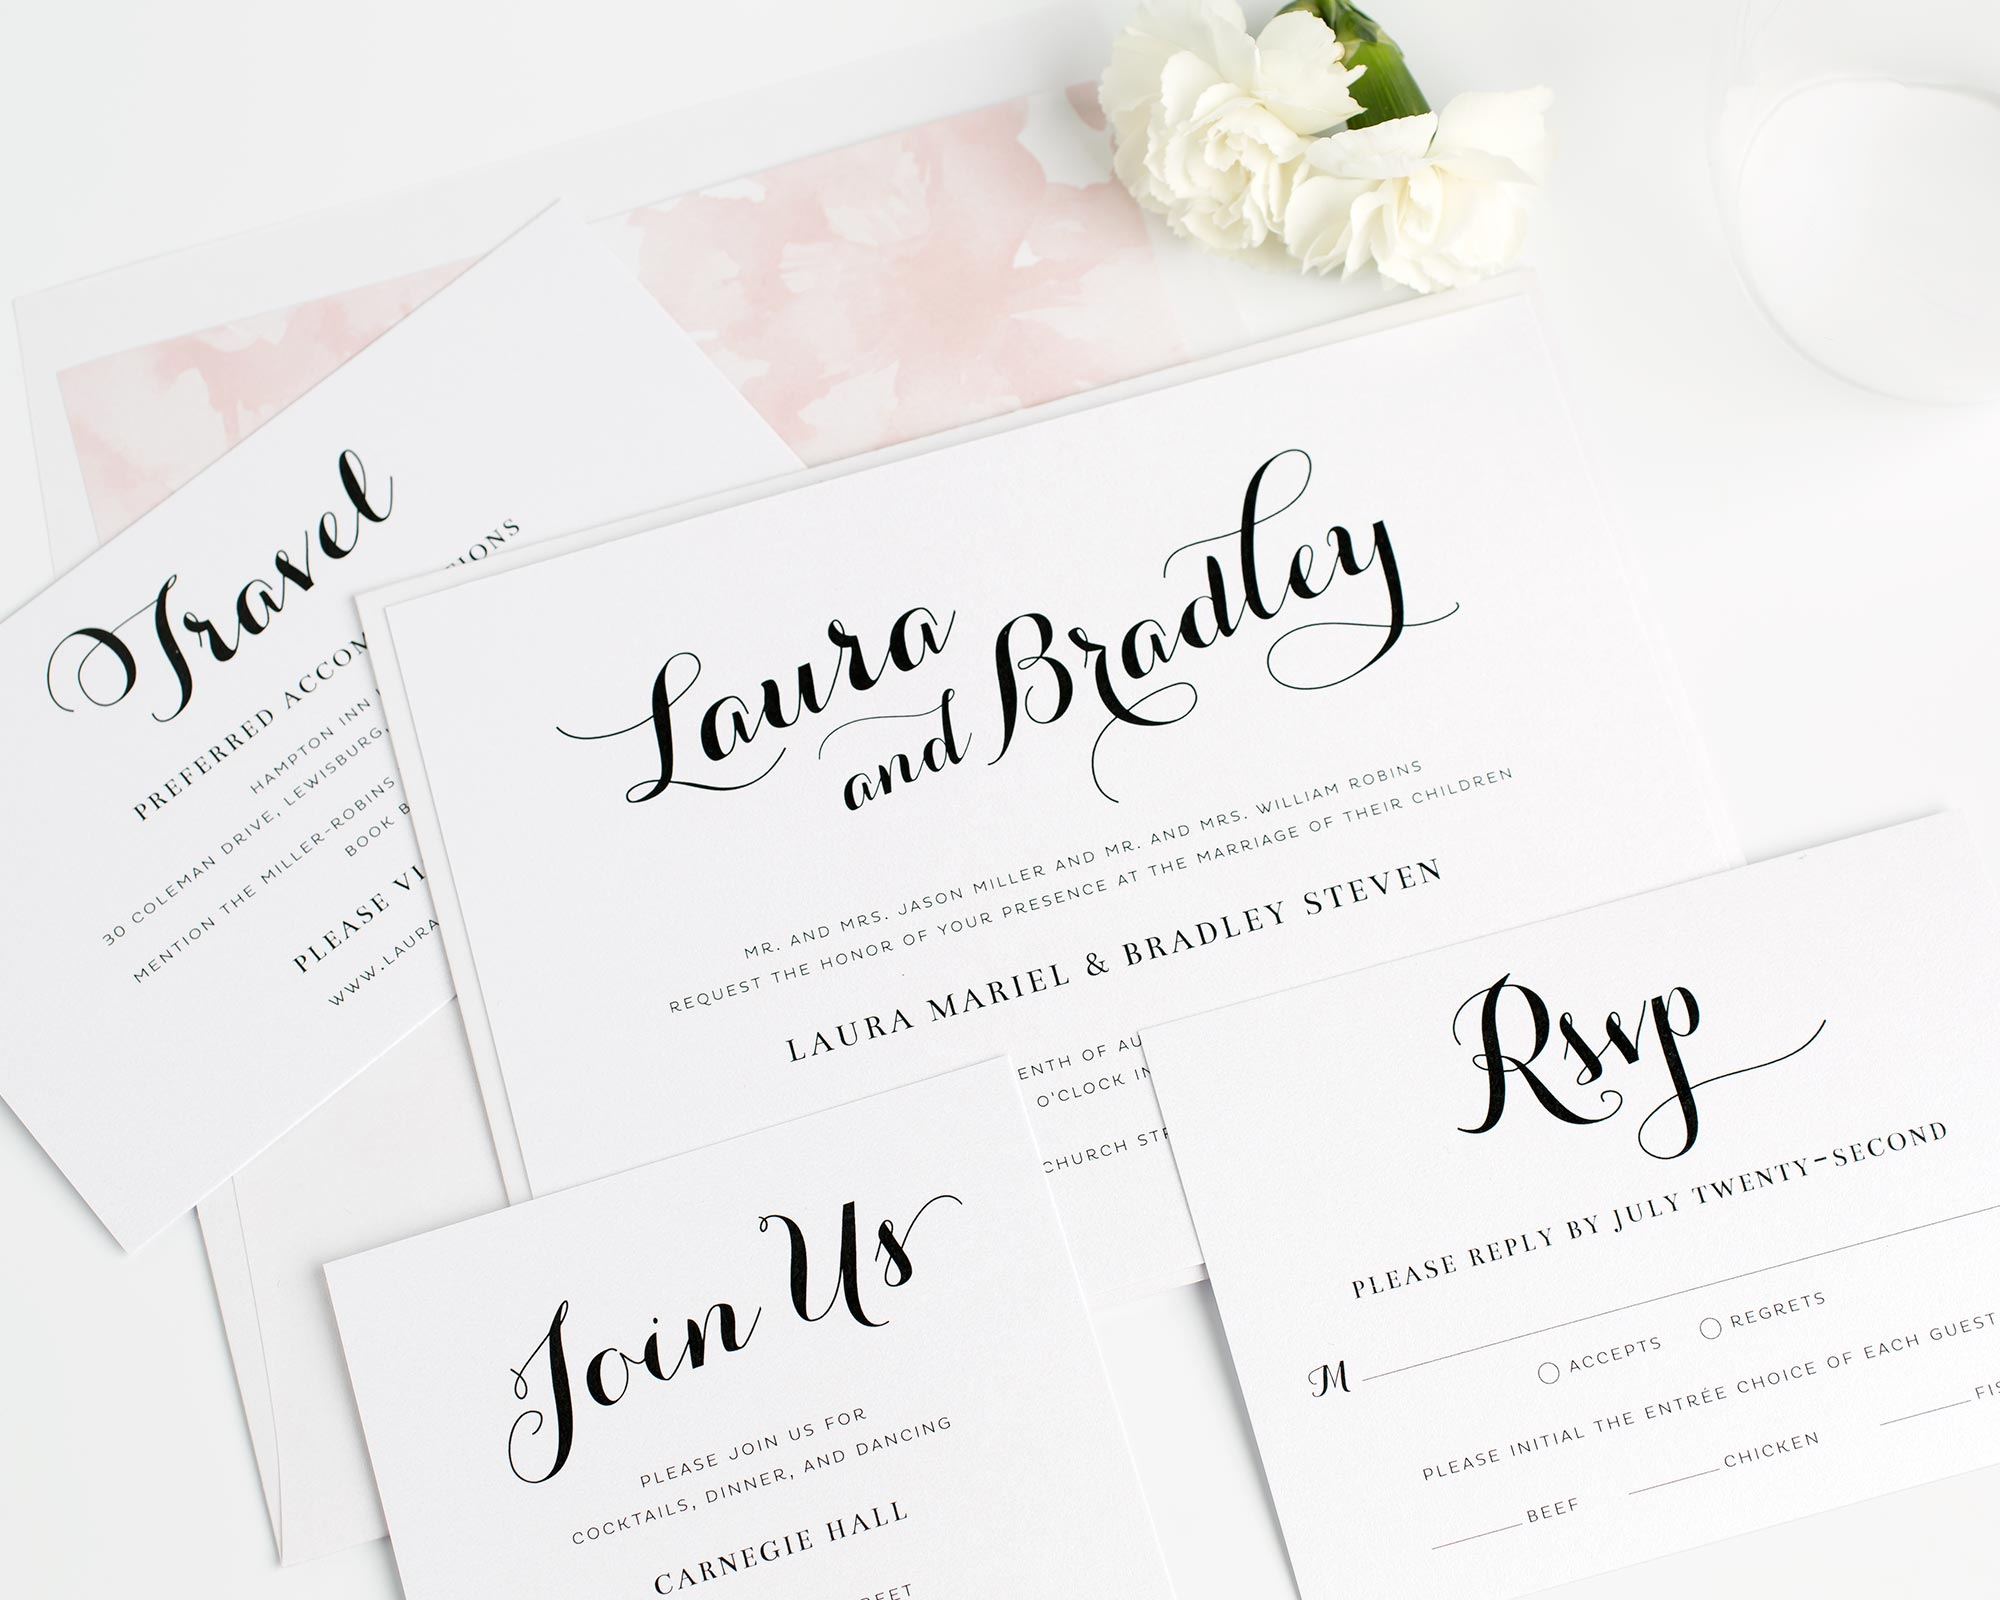 Romantic Script Wedding Invitations in Watercolor Floral